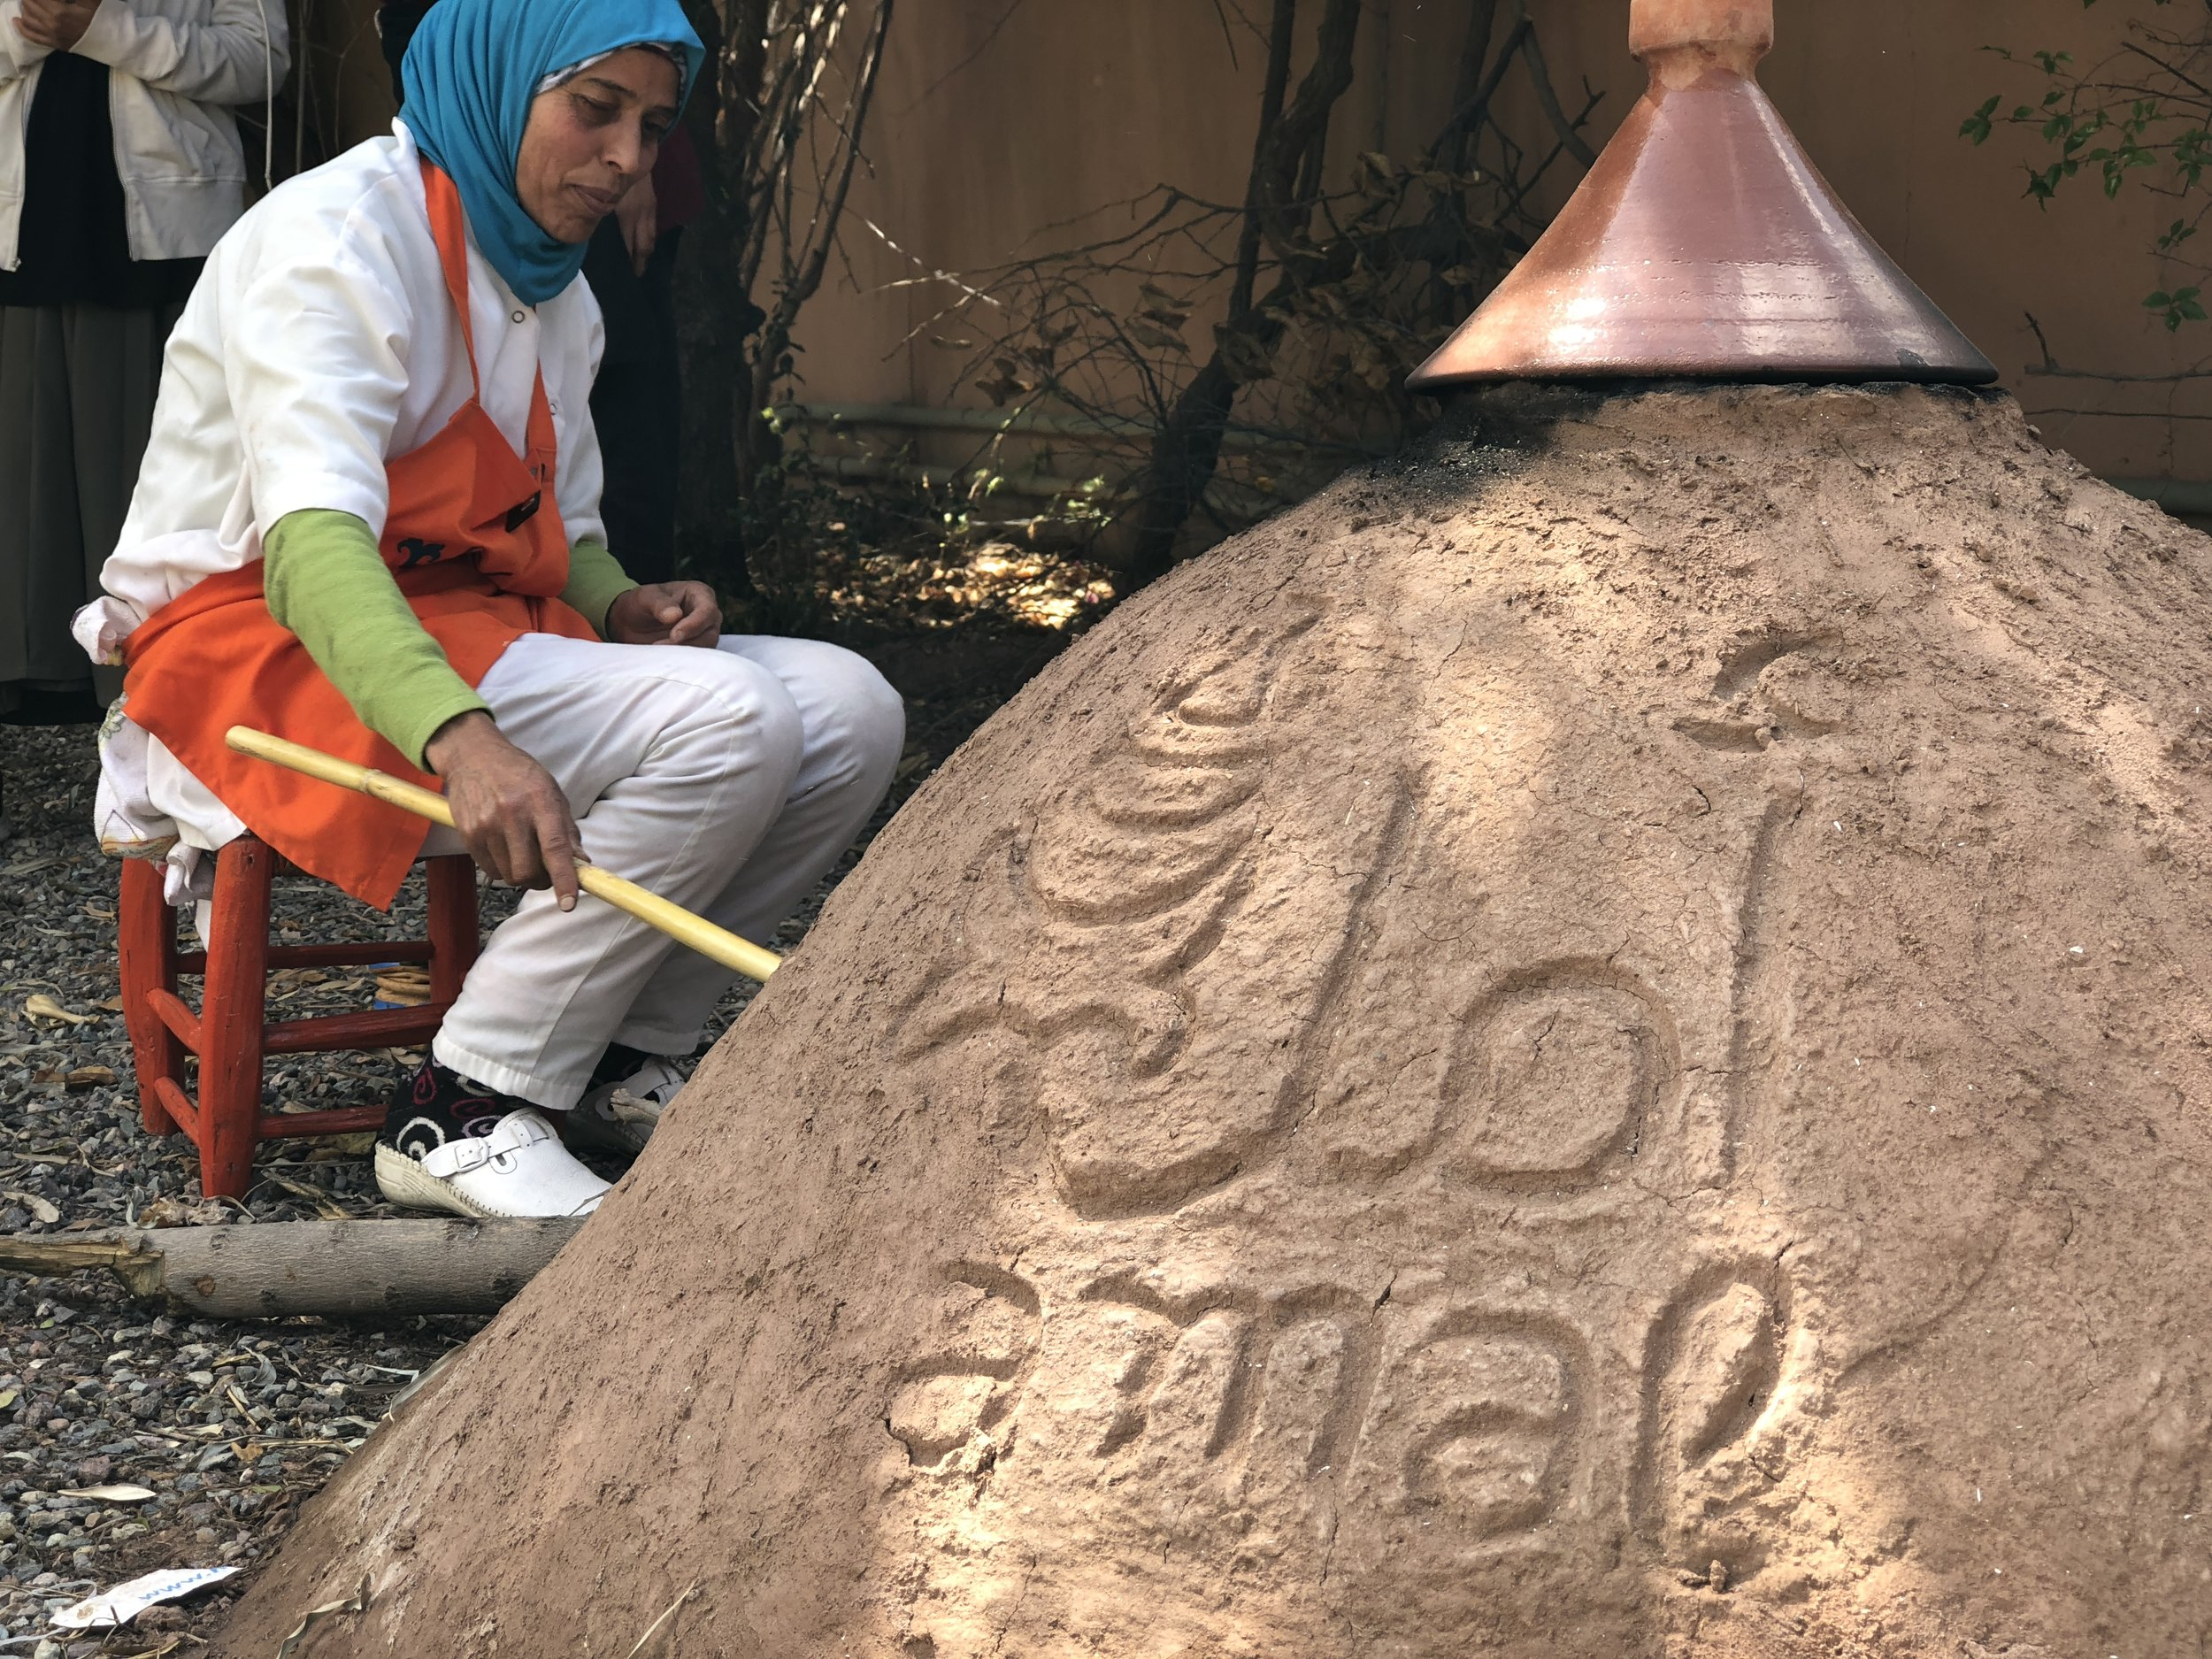 Fatiha stokes the fire in the clay bread oven in the garden at Amal Targa.